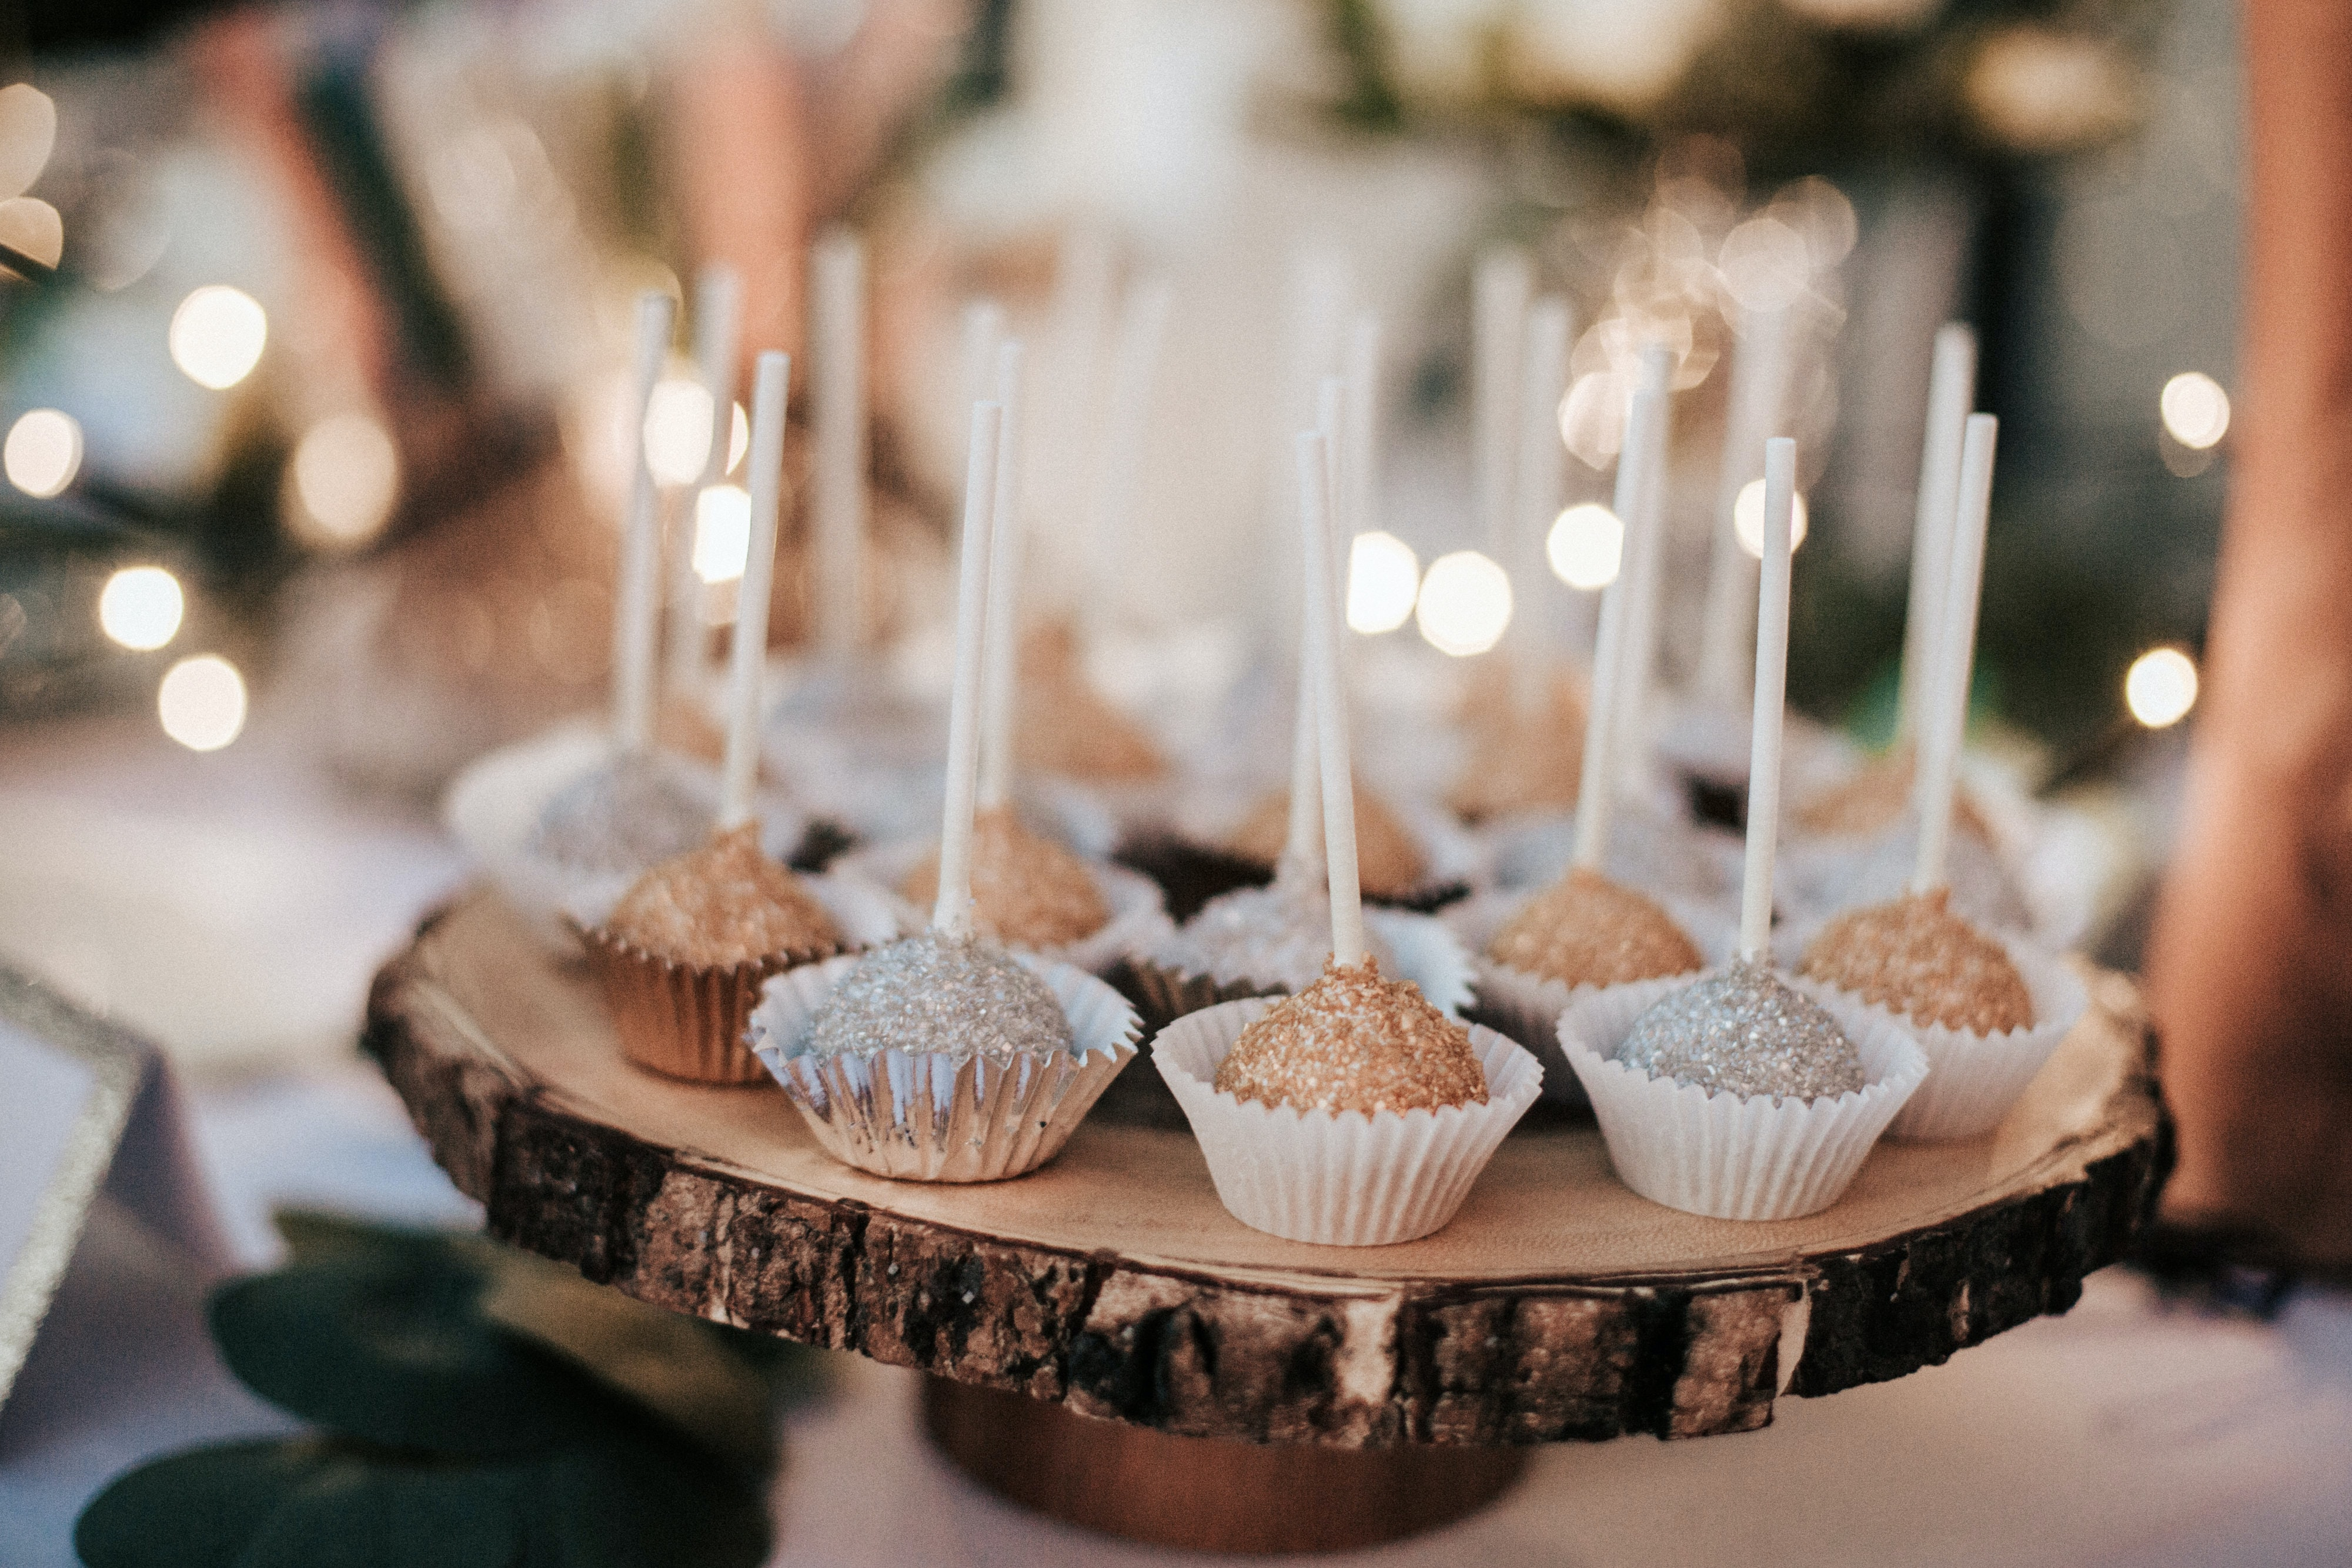 cupcakes on brown log tray